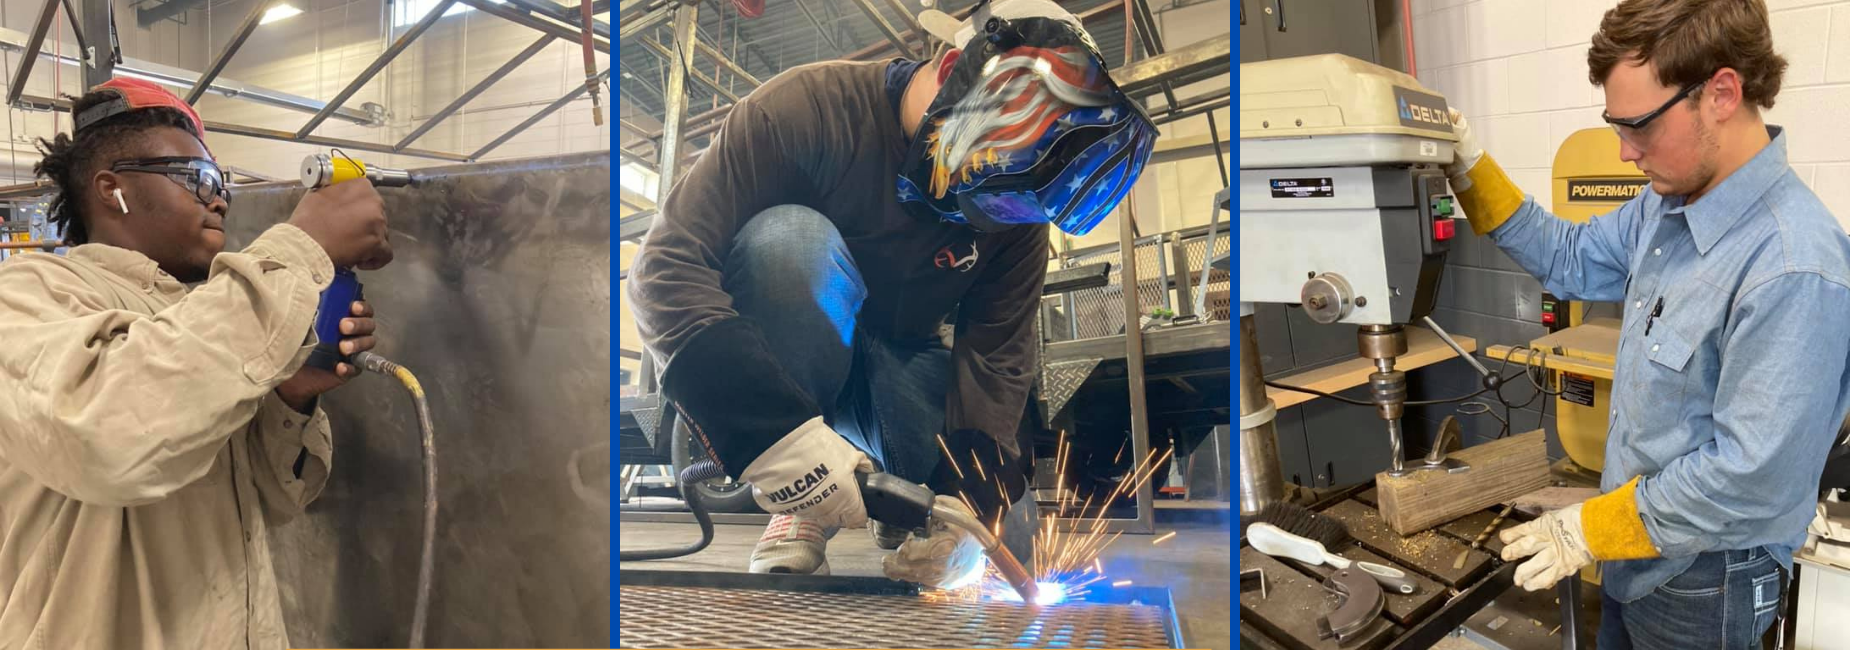 3 pictures of cte students, welding, drilling & sanding metal projects